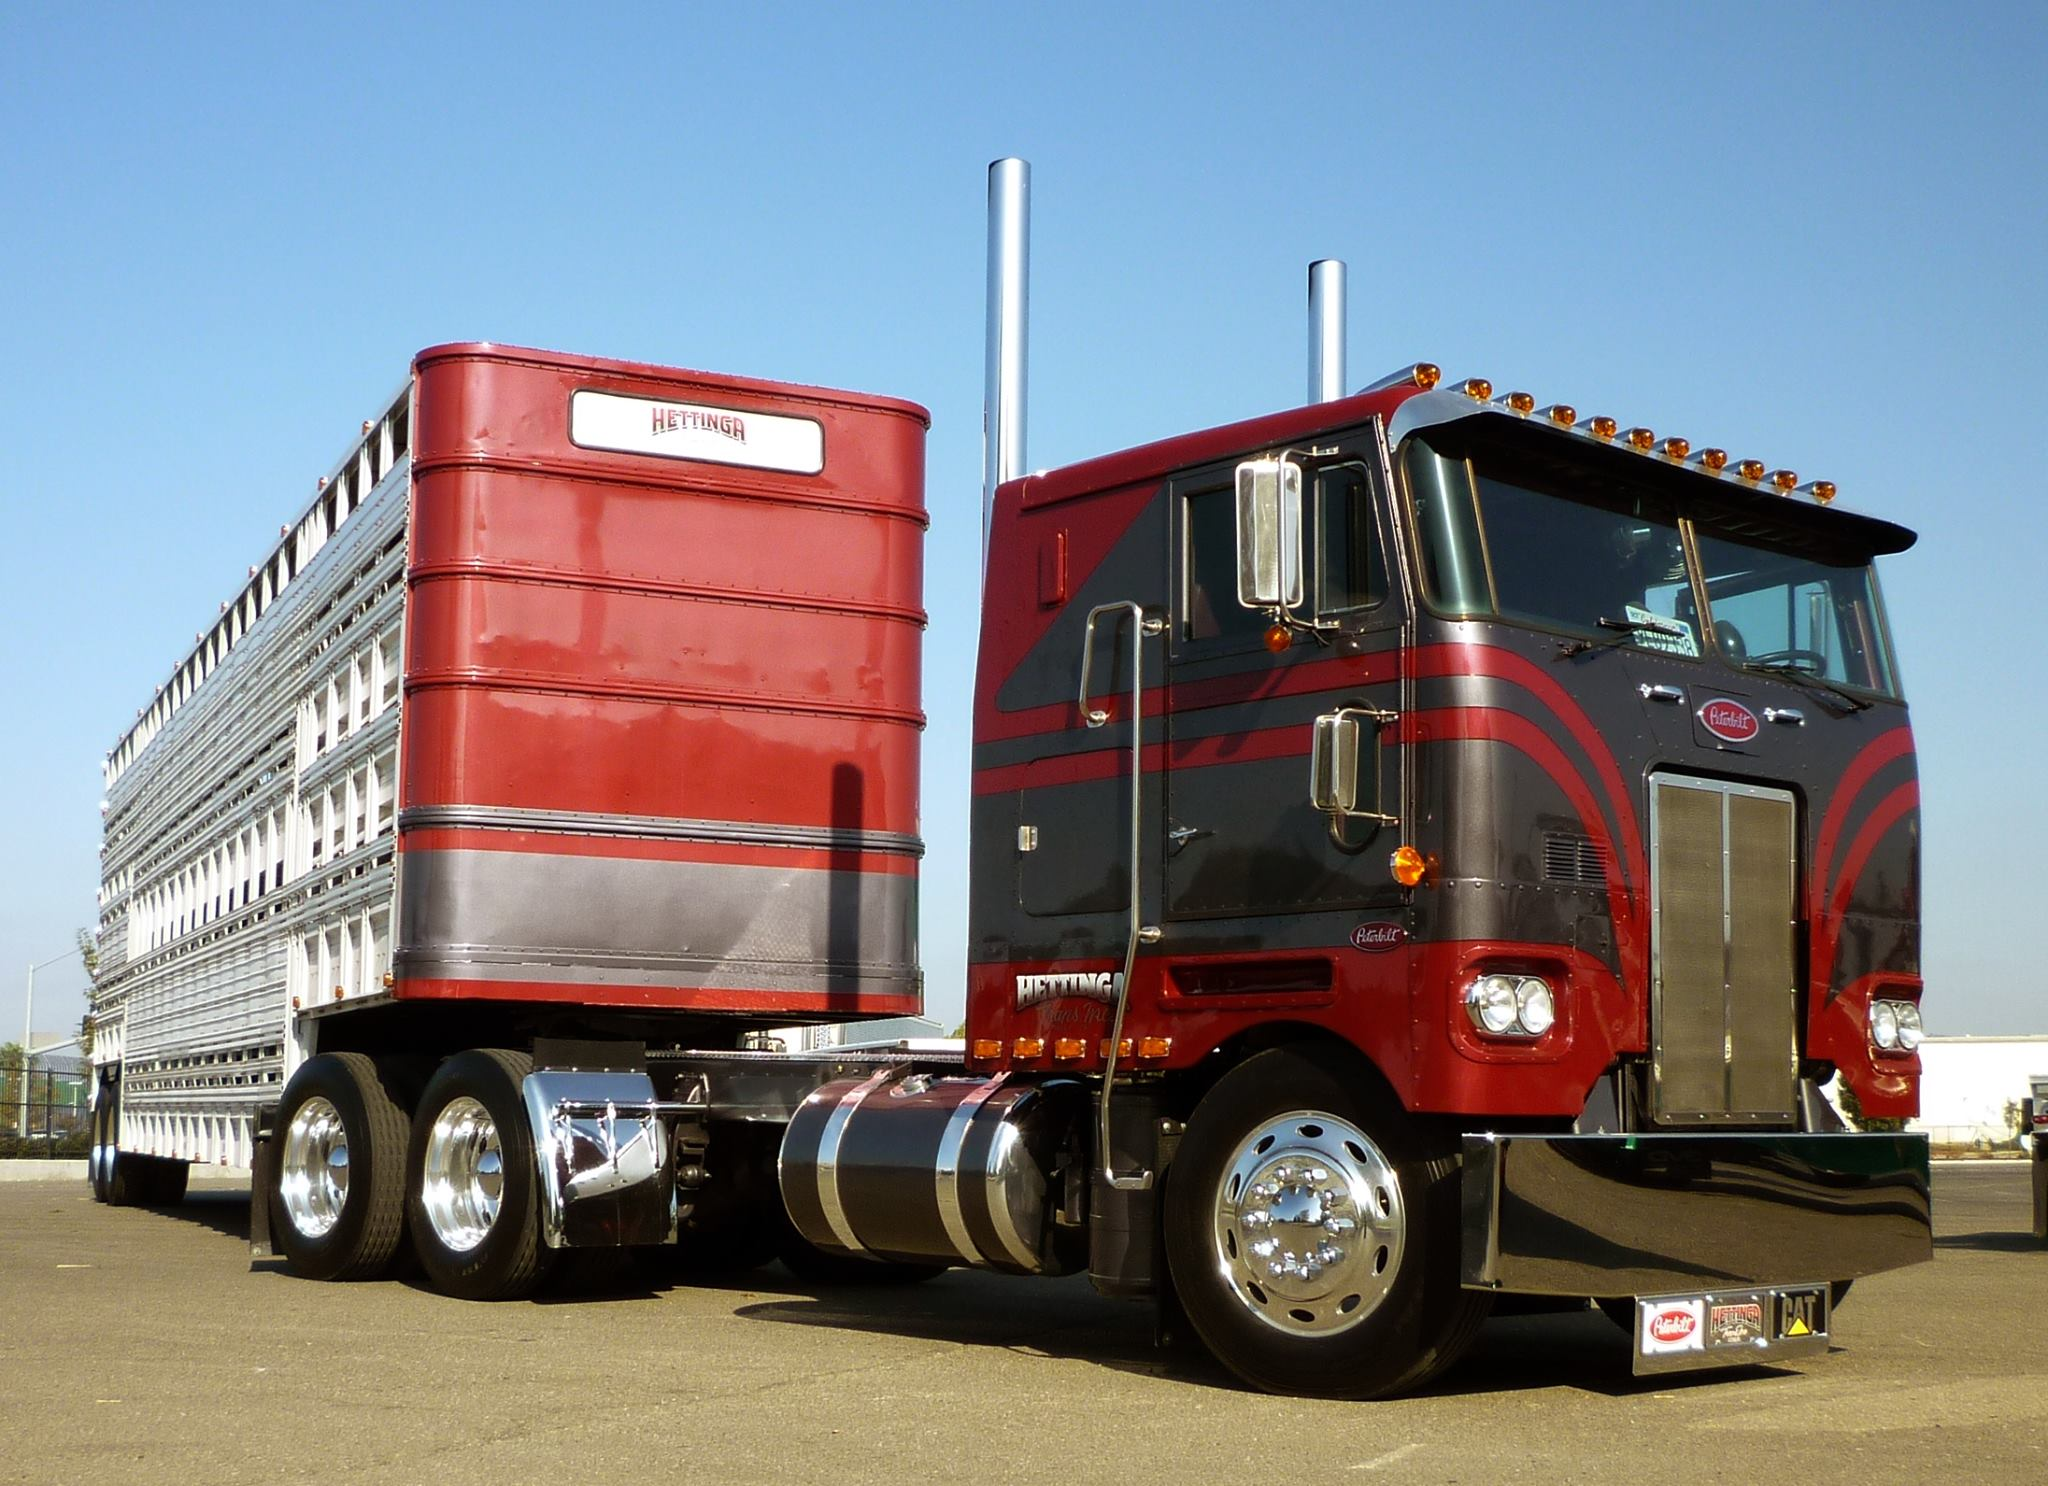 Peterbilt---352H-Haulin-a-cow-taxi